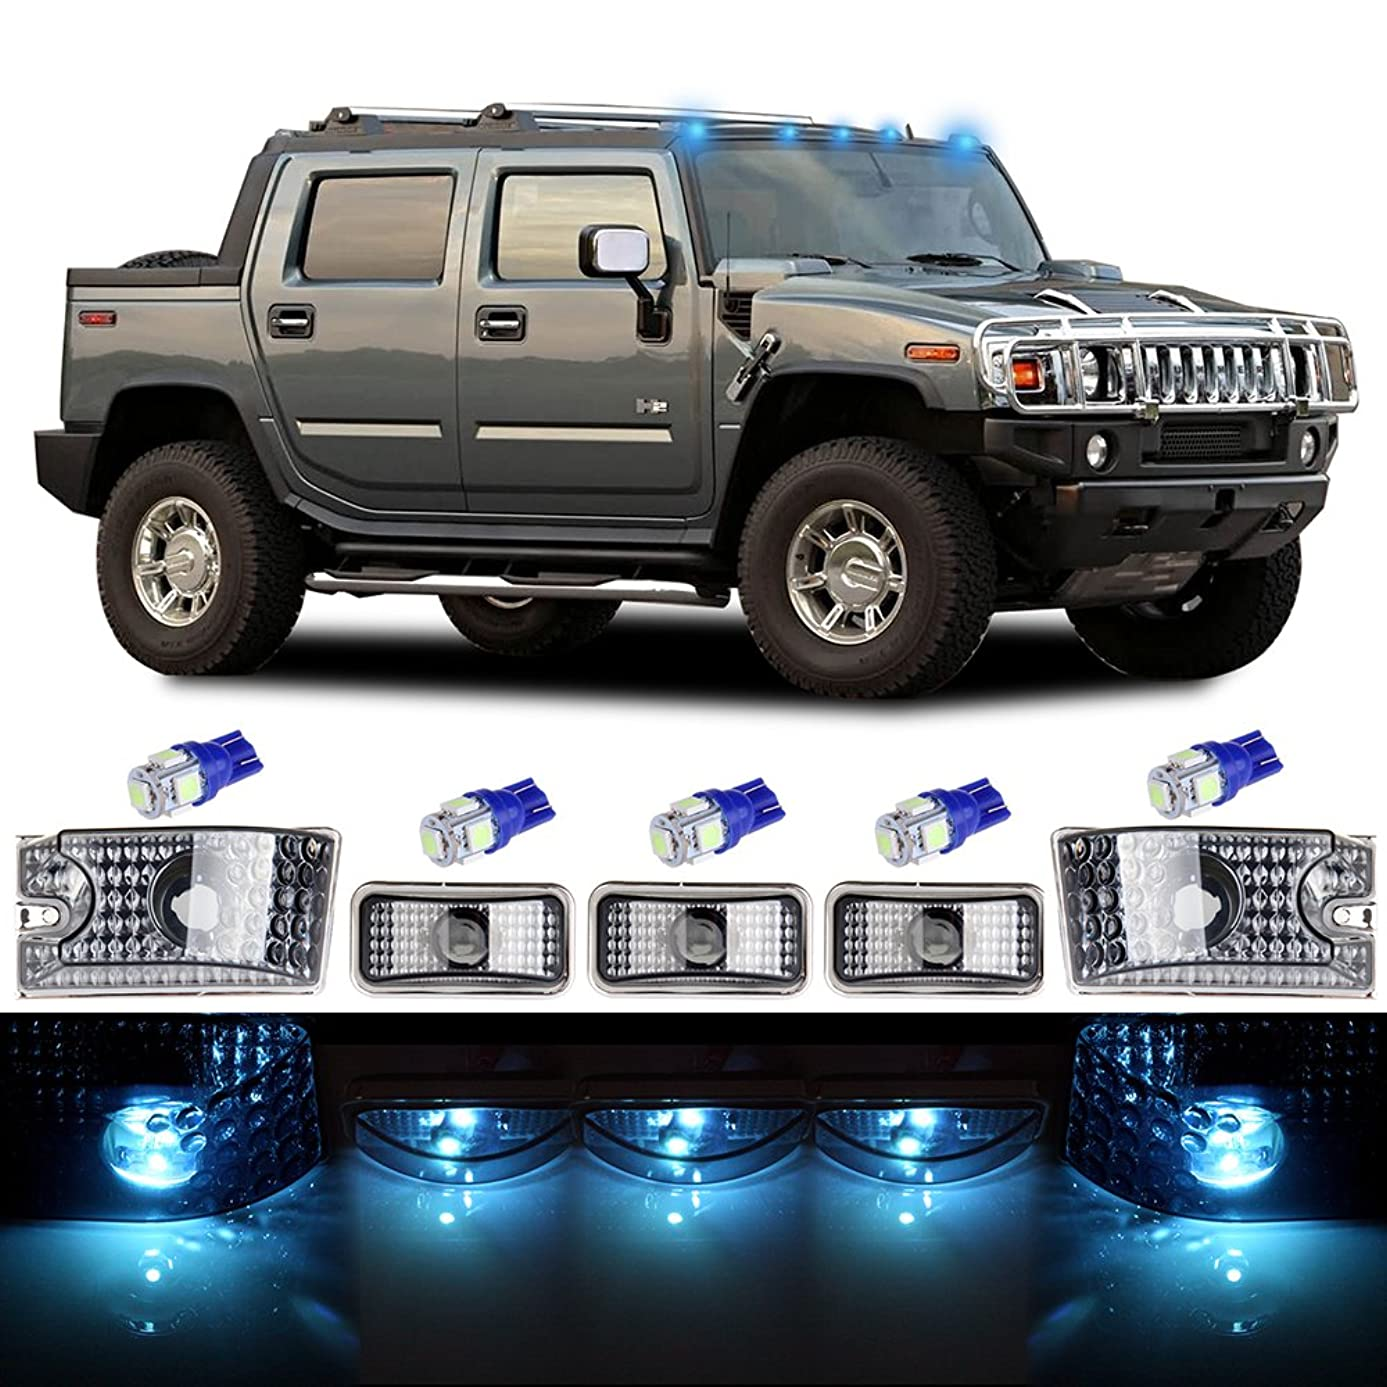 cciyu Cab Marker Light 5x Ice Blue Top Clearance Roof Running Light Bulbs Replacement Cab Marker Assembly Replacement fit for 2003 2004 2005 2006 2007 2008 2009 Hummer H2